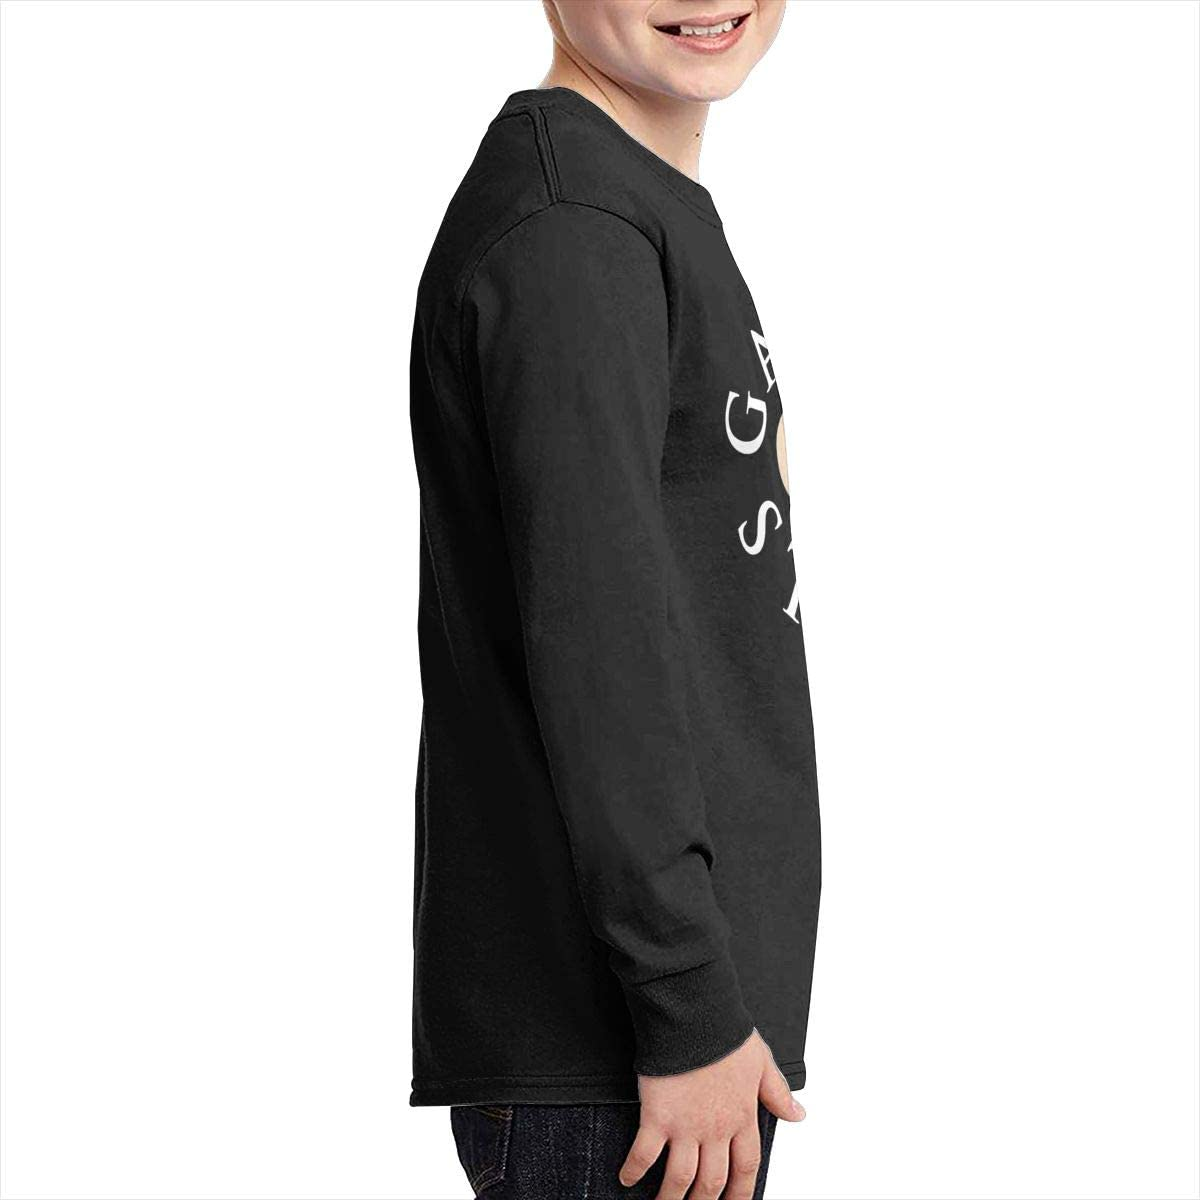 MichaelHazzard Gaelic Storm Logo Youth Classic Long Sleeve Crewneck Tee T-Shirt for Boys and Girls